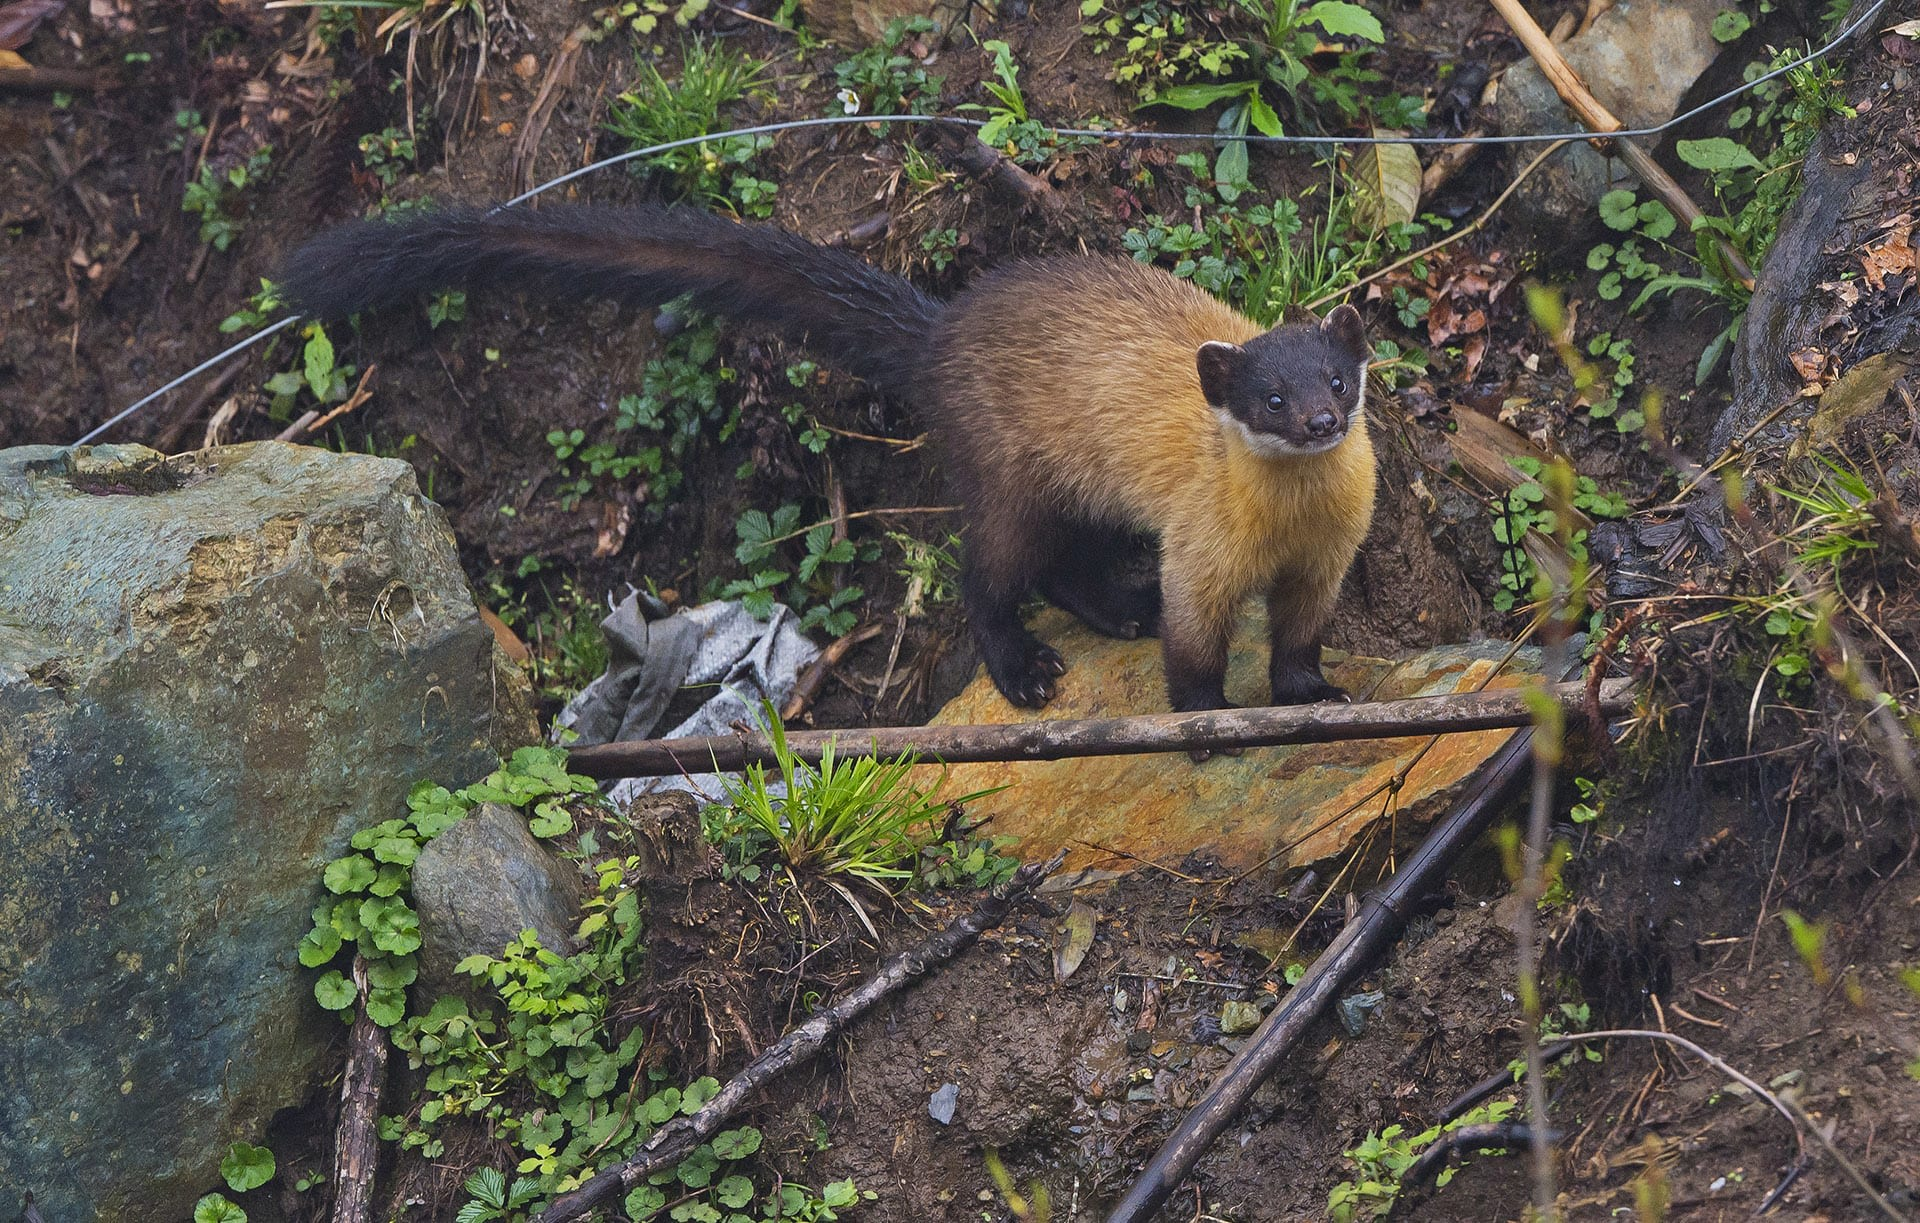 """In India, martens are regular visitors to garbage dumps in hill towns and villages. """"In many of these mountain communities, garbage is thrown down slopes near homes,"""" says Raman Kumar, """"We were doing a small study on garbage close to Nainital — of people dumping stuff on the edge of the forest. There too, the marten was a regular visitor. I've also seen them in the higher parts of Mussoorie and Dehradun in the day."""" Photo: Dhritiman Mukherjee"""